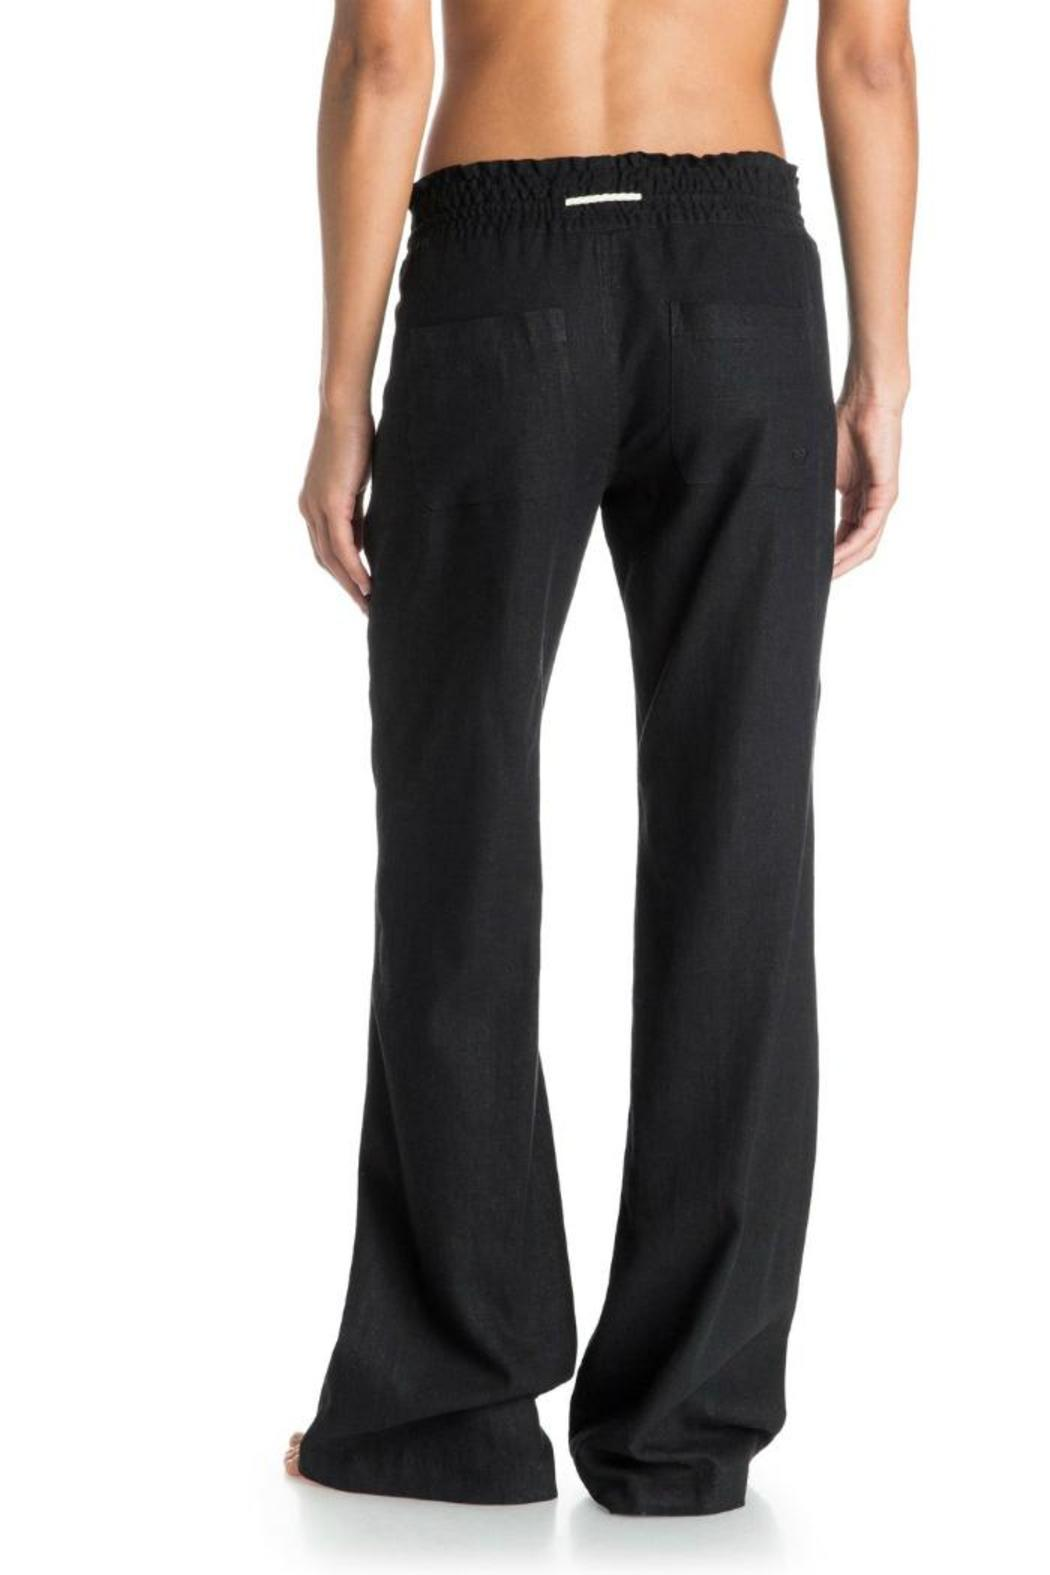 Roxy Oceanside Beach Pant - Side Cropped Image